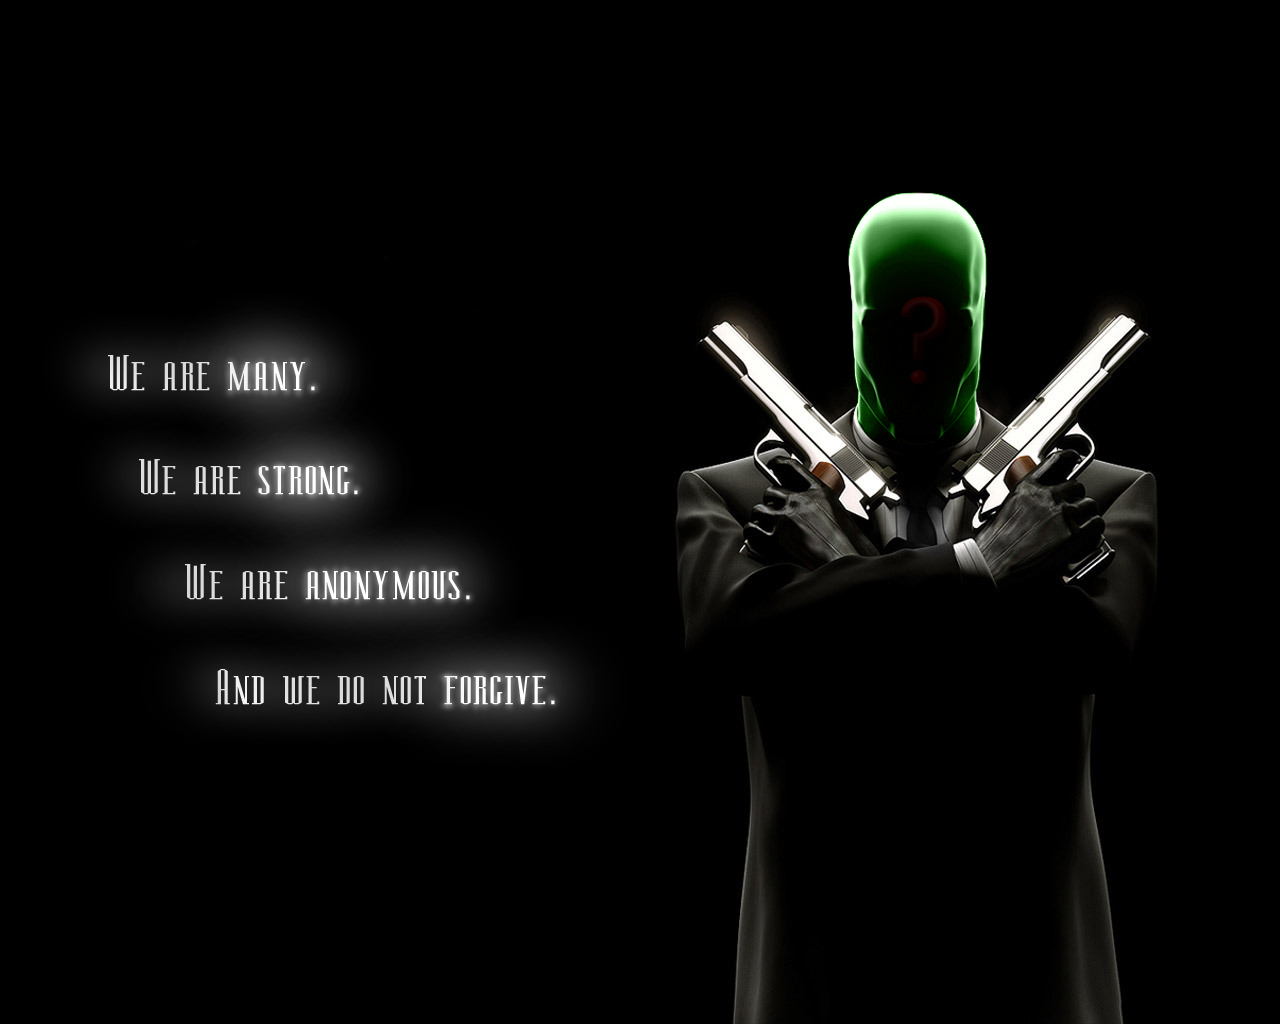 Anonymous Hacker Wallpaper Download 4k Wallpapers For Hit